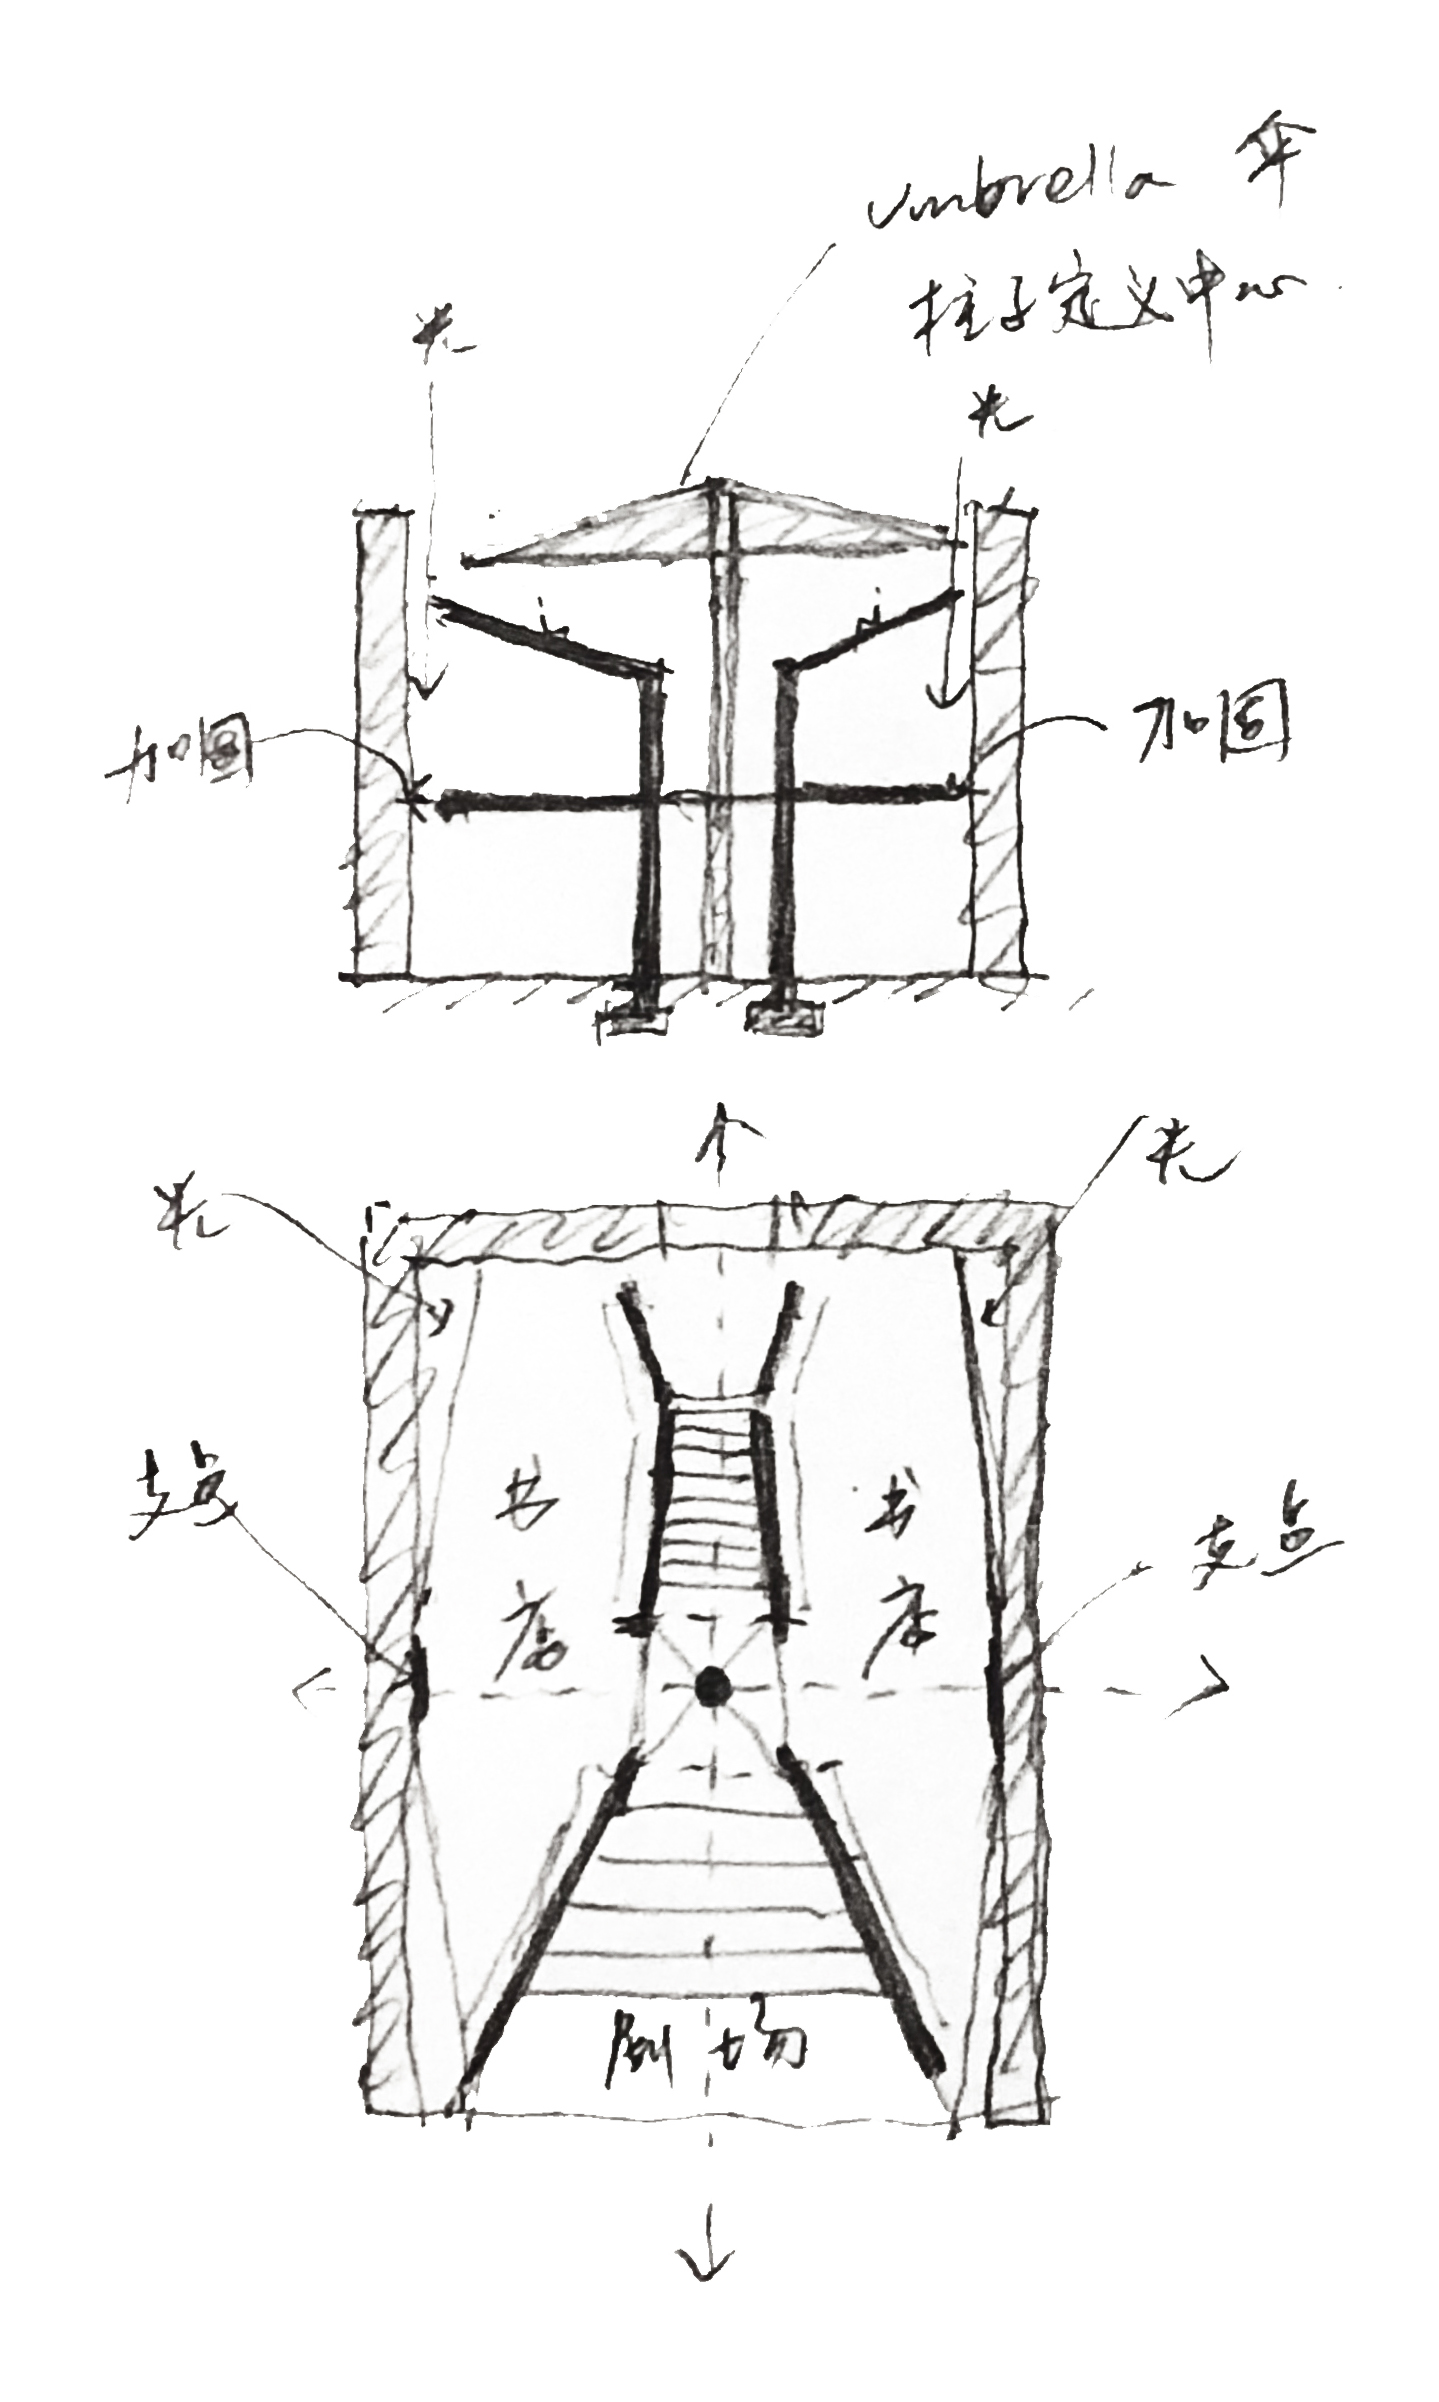 02 中心柱草图 .华黎 Central column sketch .HUA Li.jpg